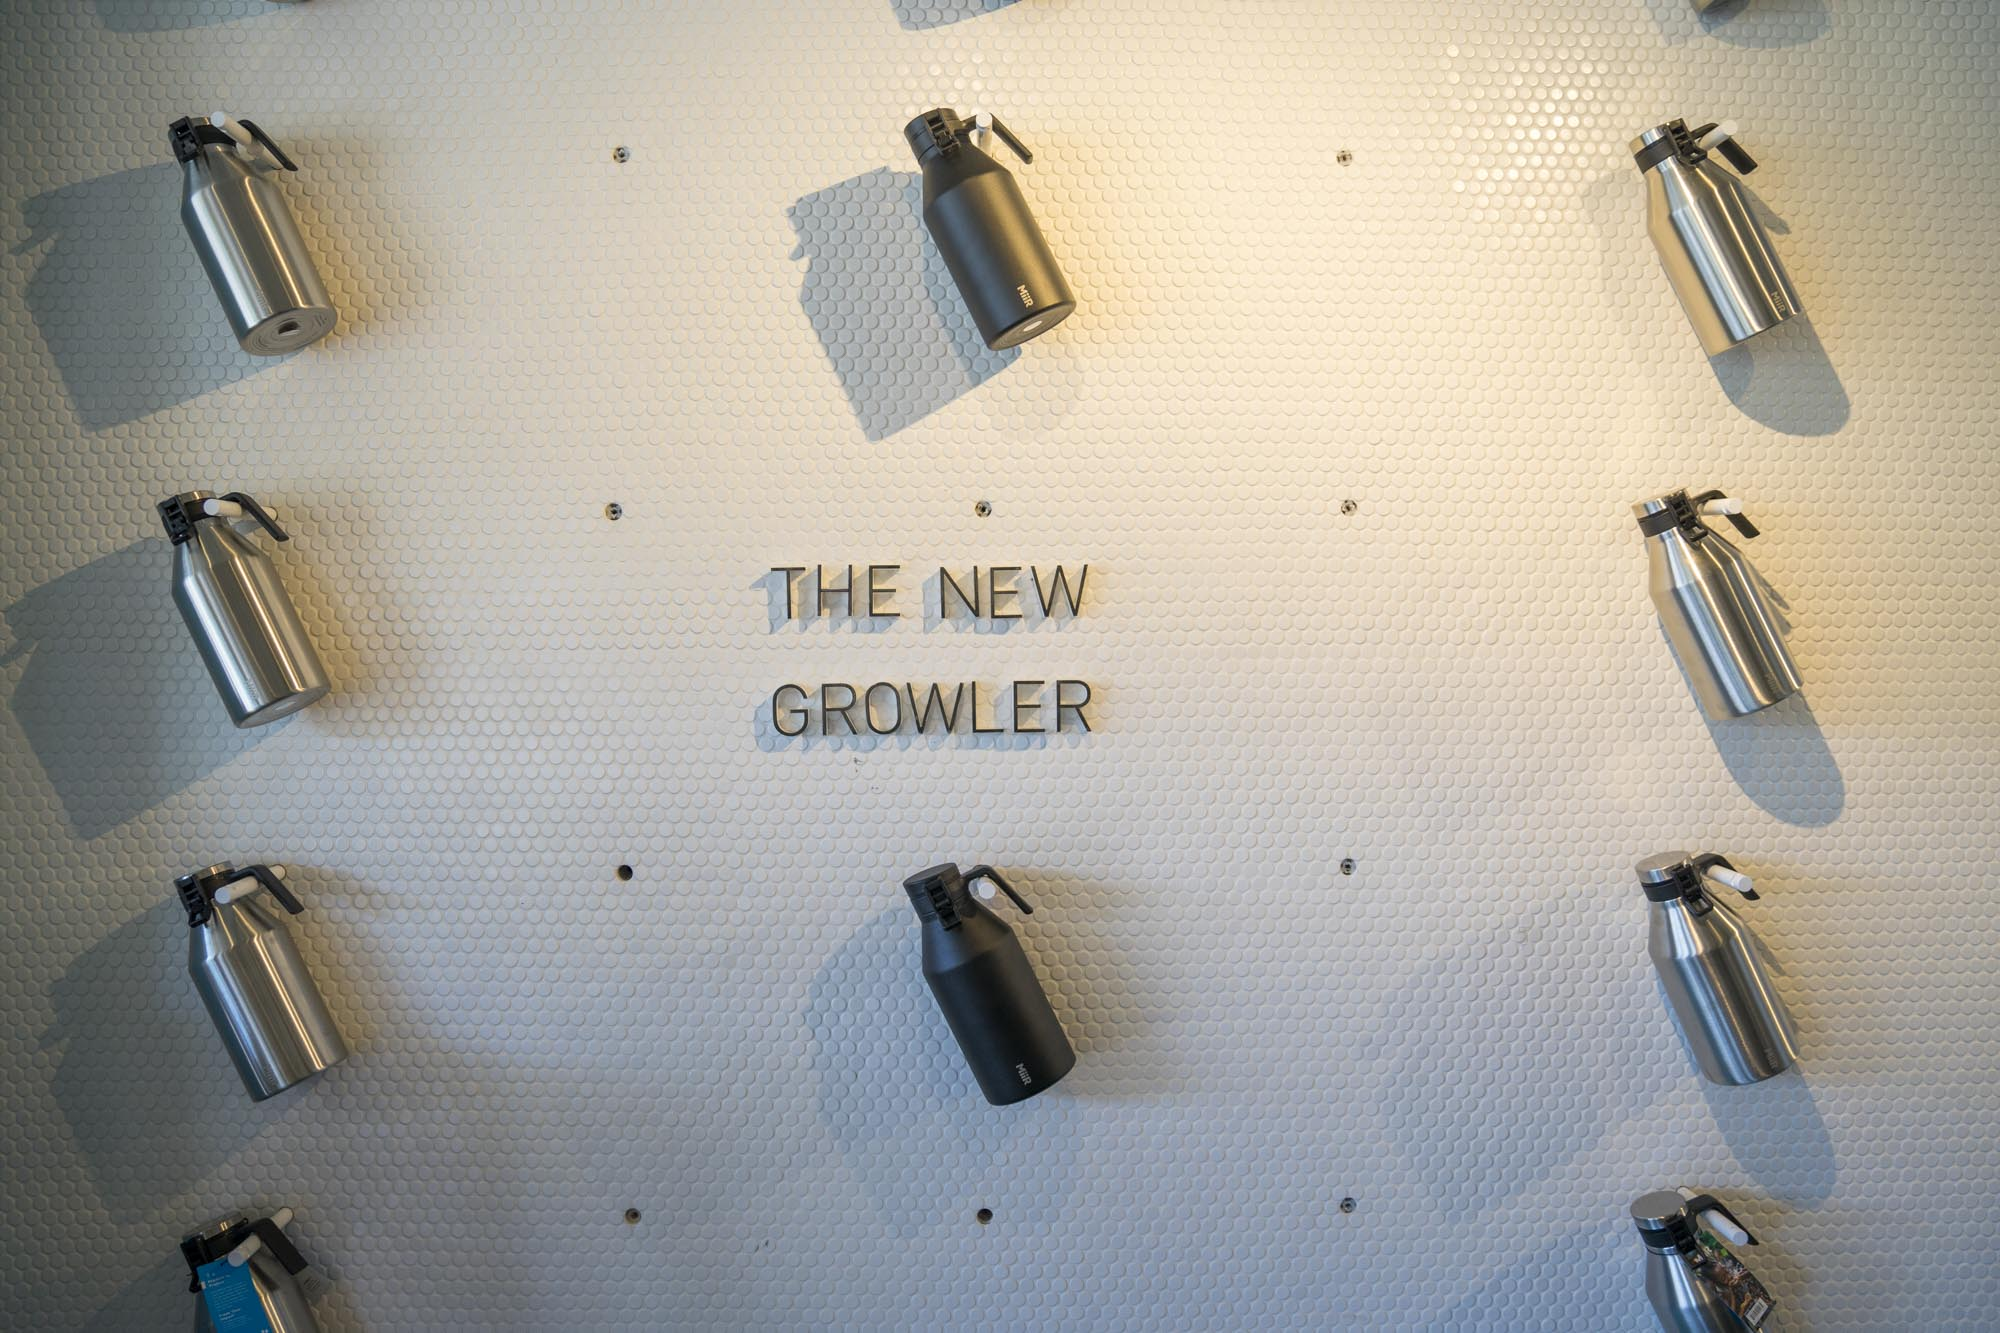 MiiR's growlers hanging on a wall at Miir Flagship in Seattle.